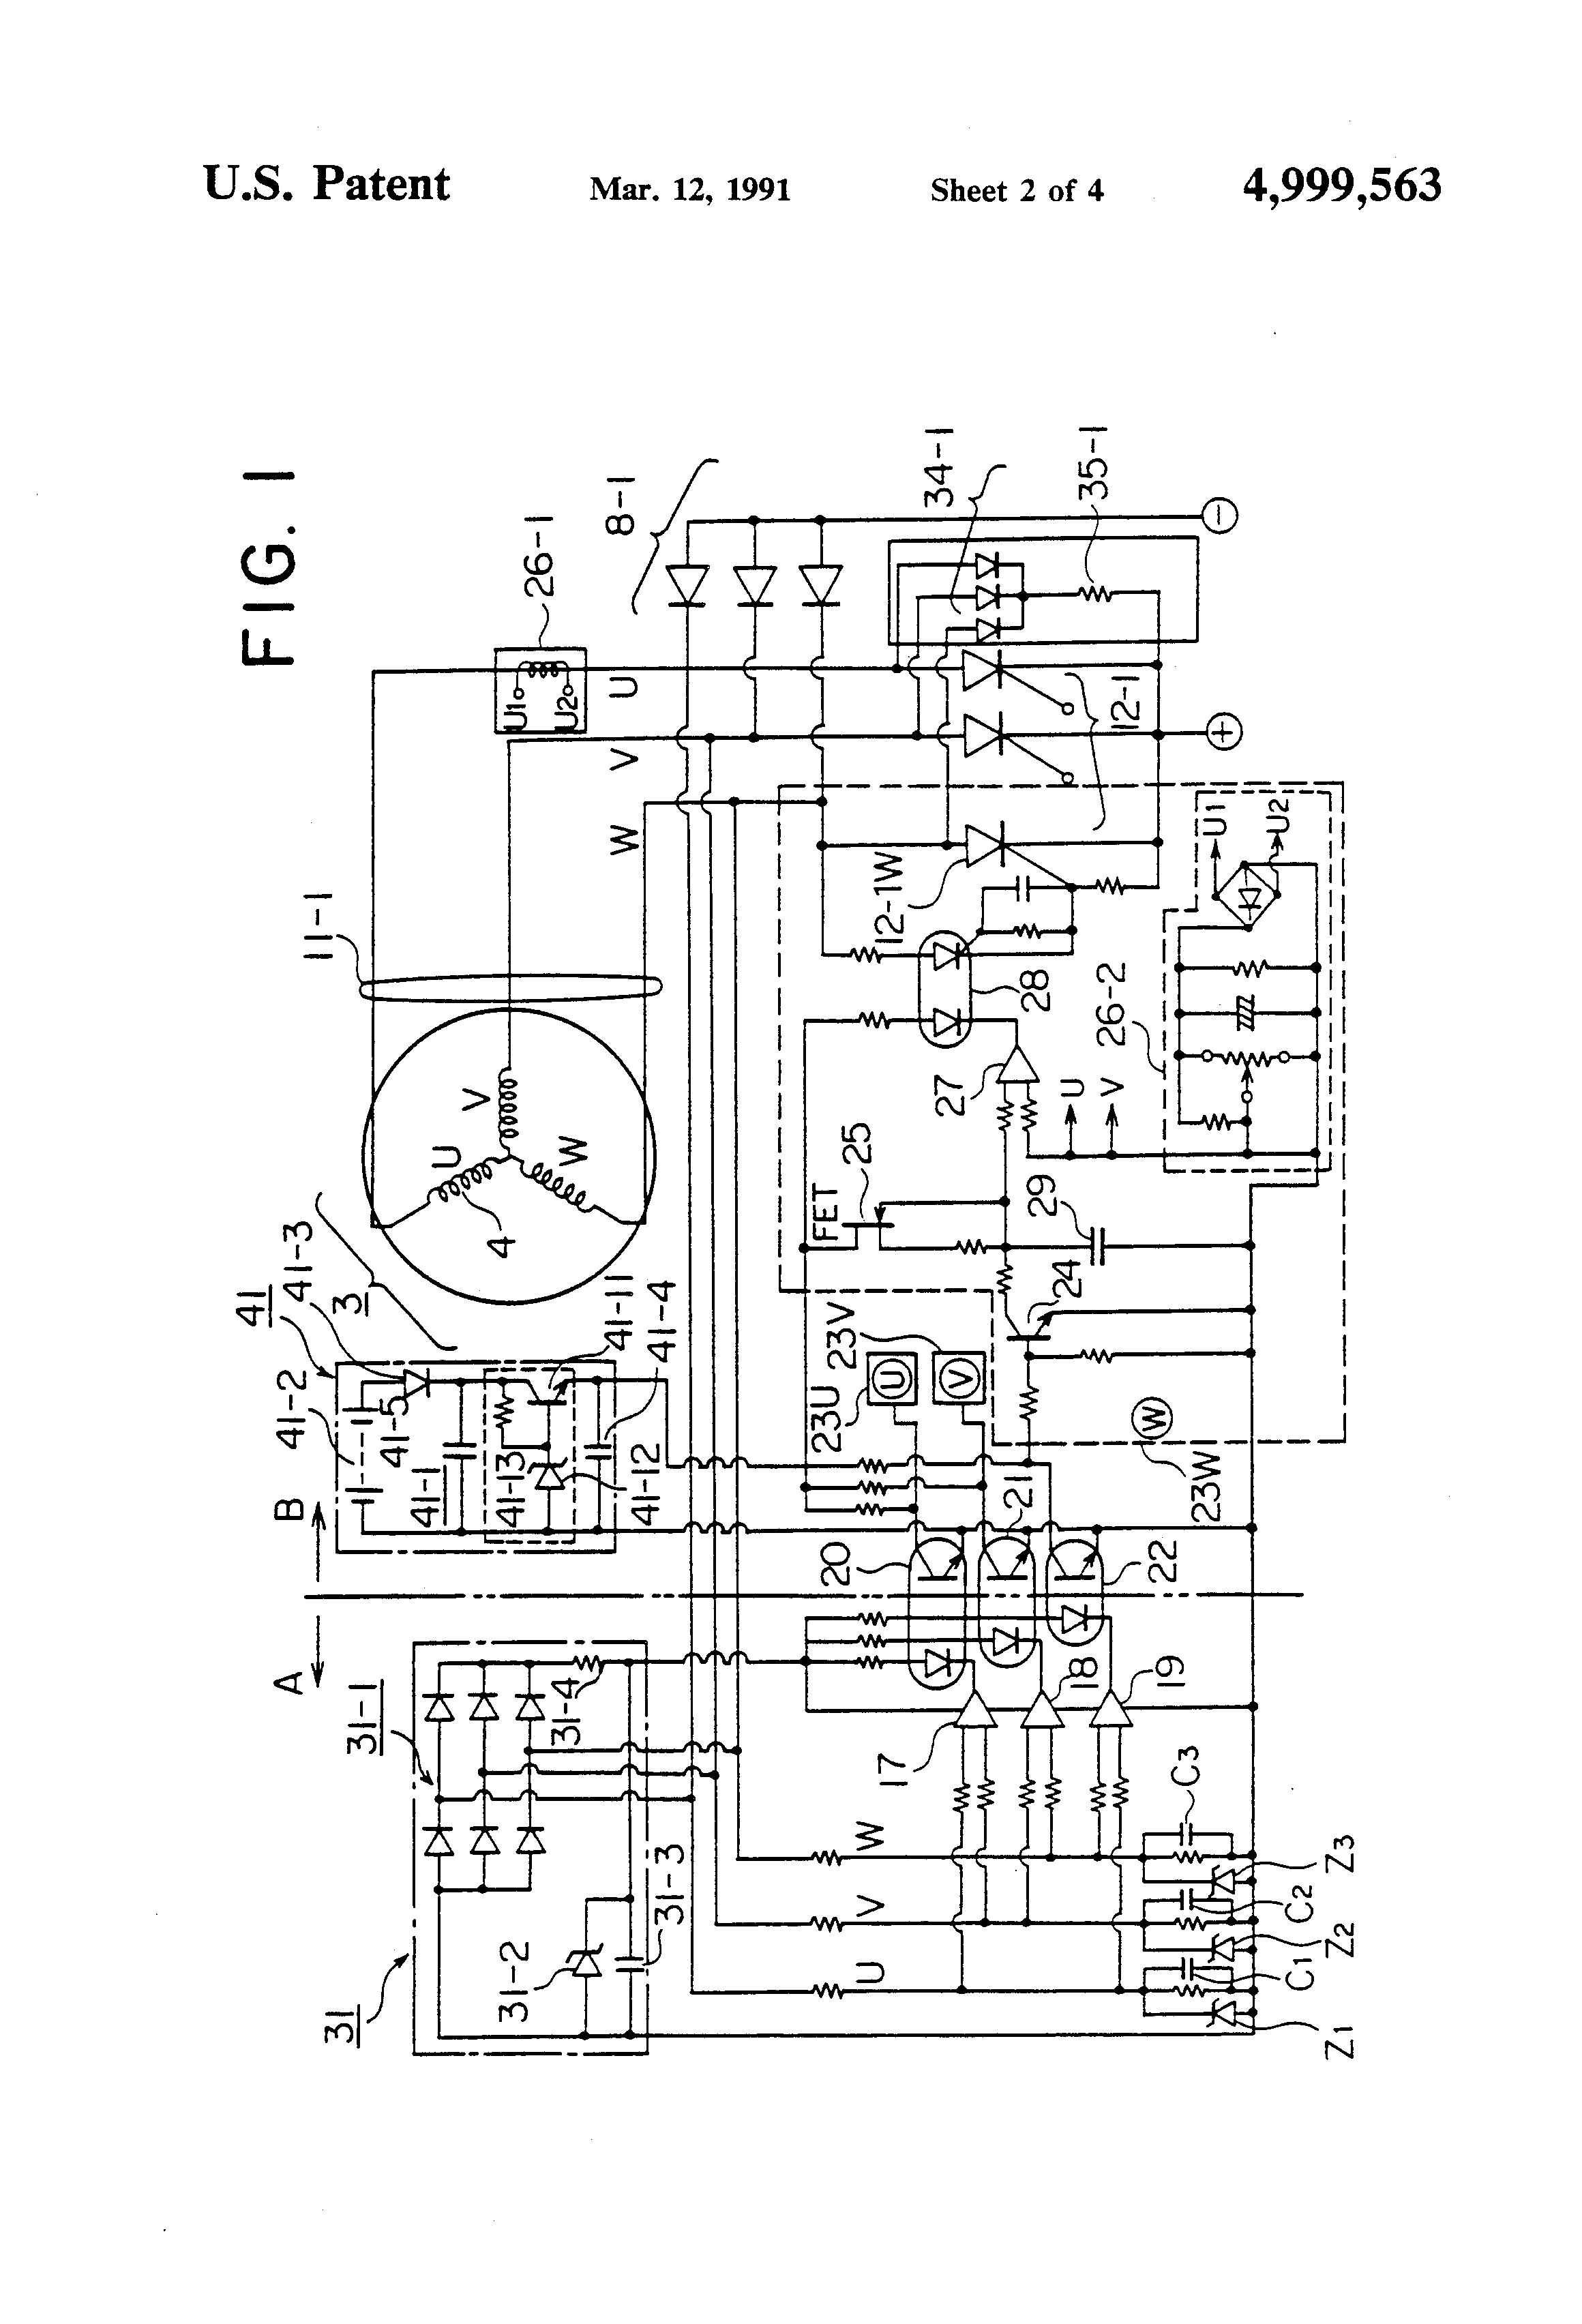 John Deere 4440 Air Conditioning Wiring Diagram 47 X300 Harness Patent Us4999563 Separately Power Feeding Welding Generator Pertaining To Ac Electrical Diagrams Generatorresize